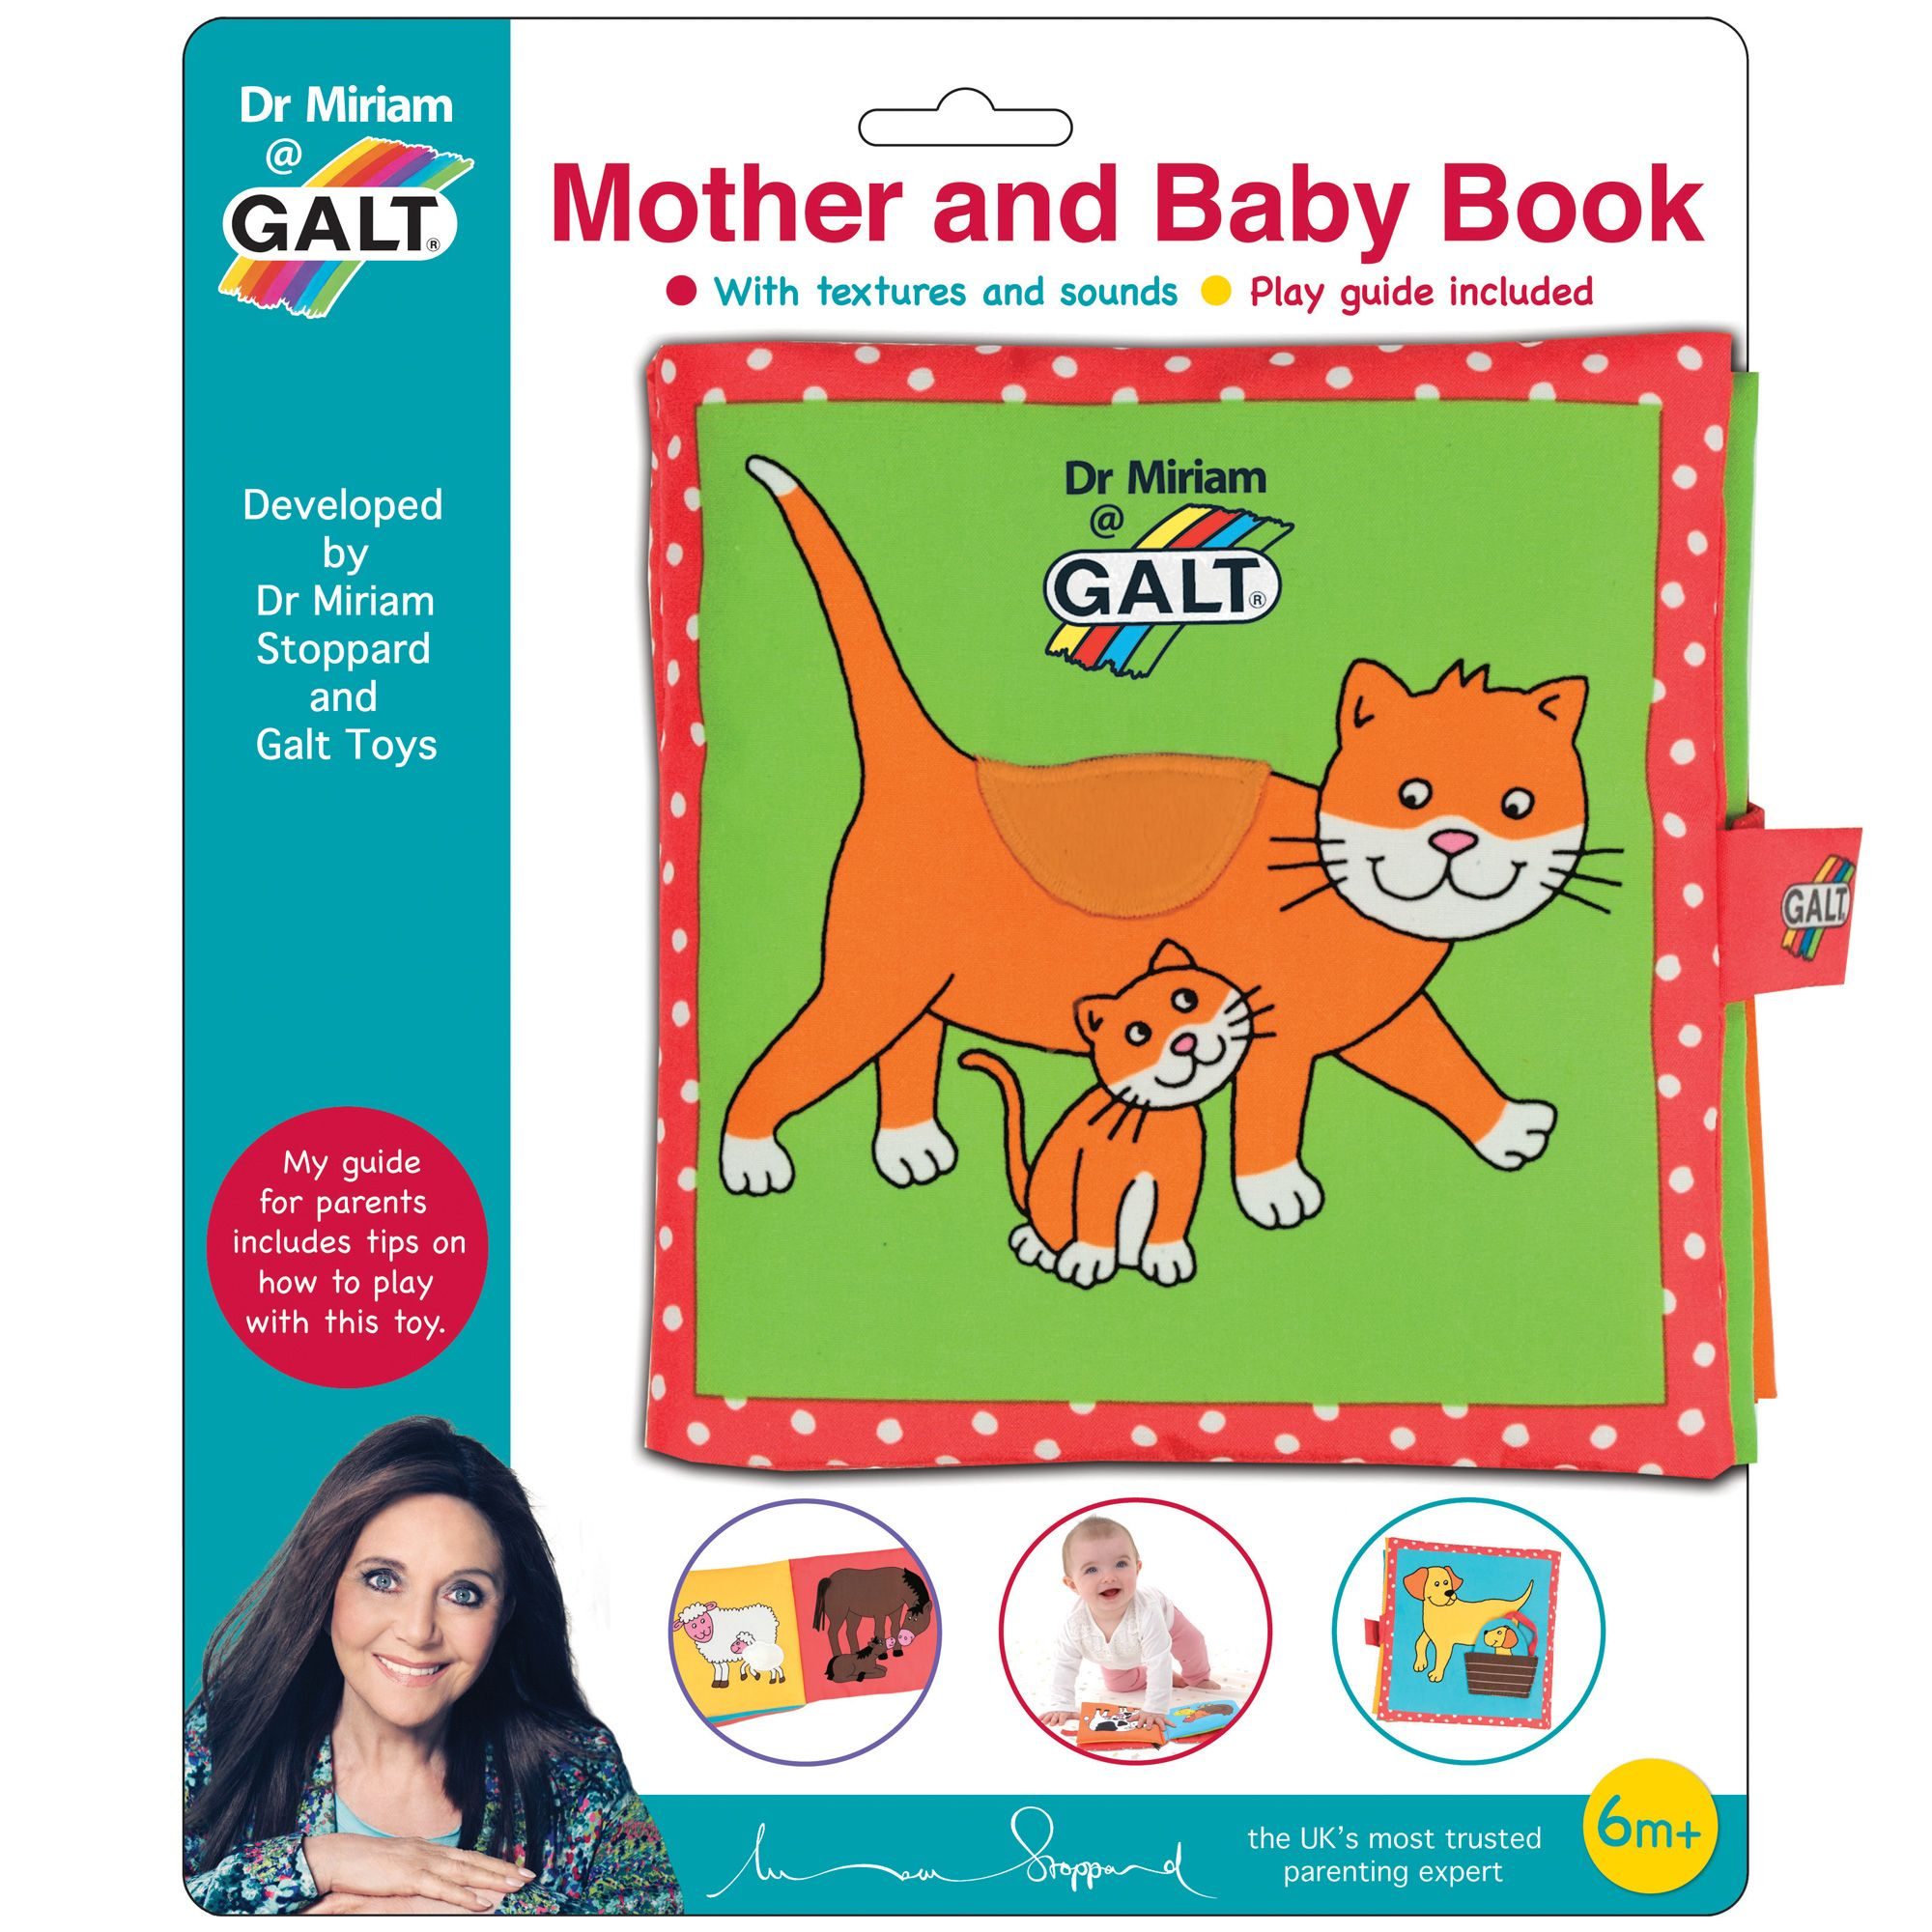 Mother And Baby Gifts Delivered Uk : Galt dr miriam mother baby book from debenhams